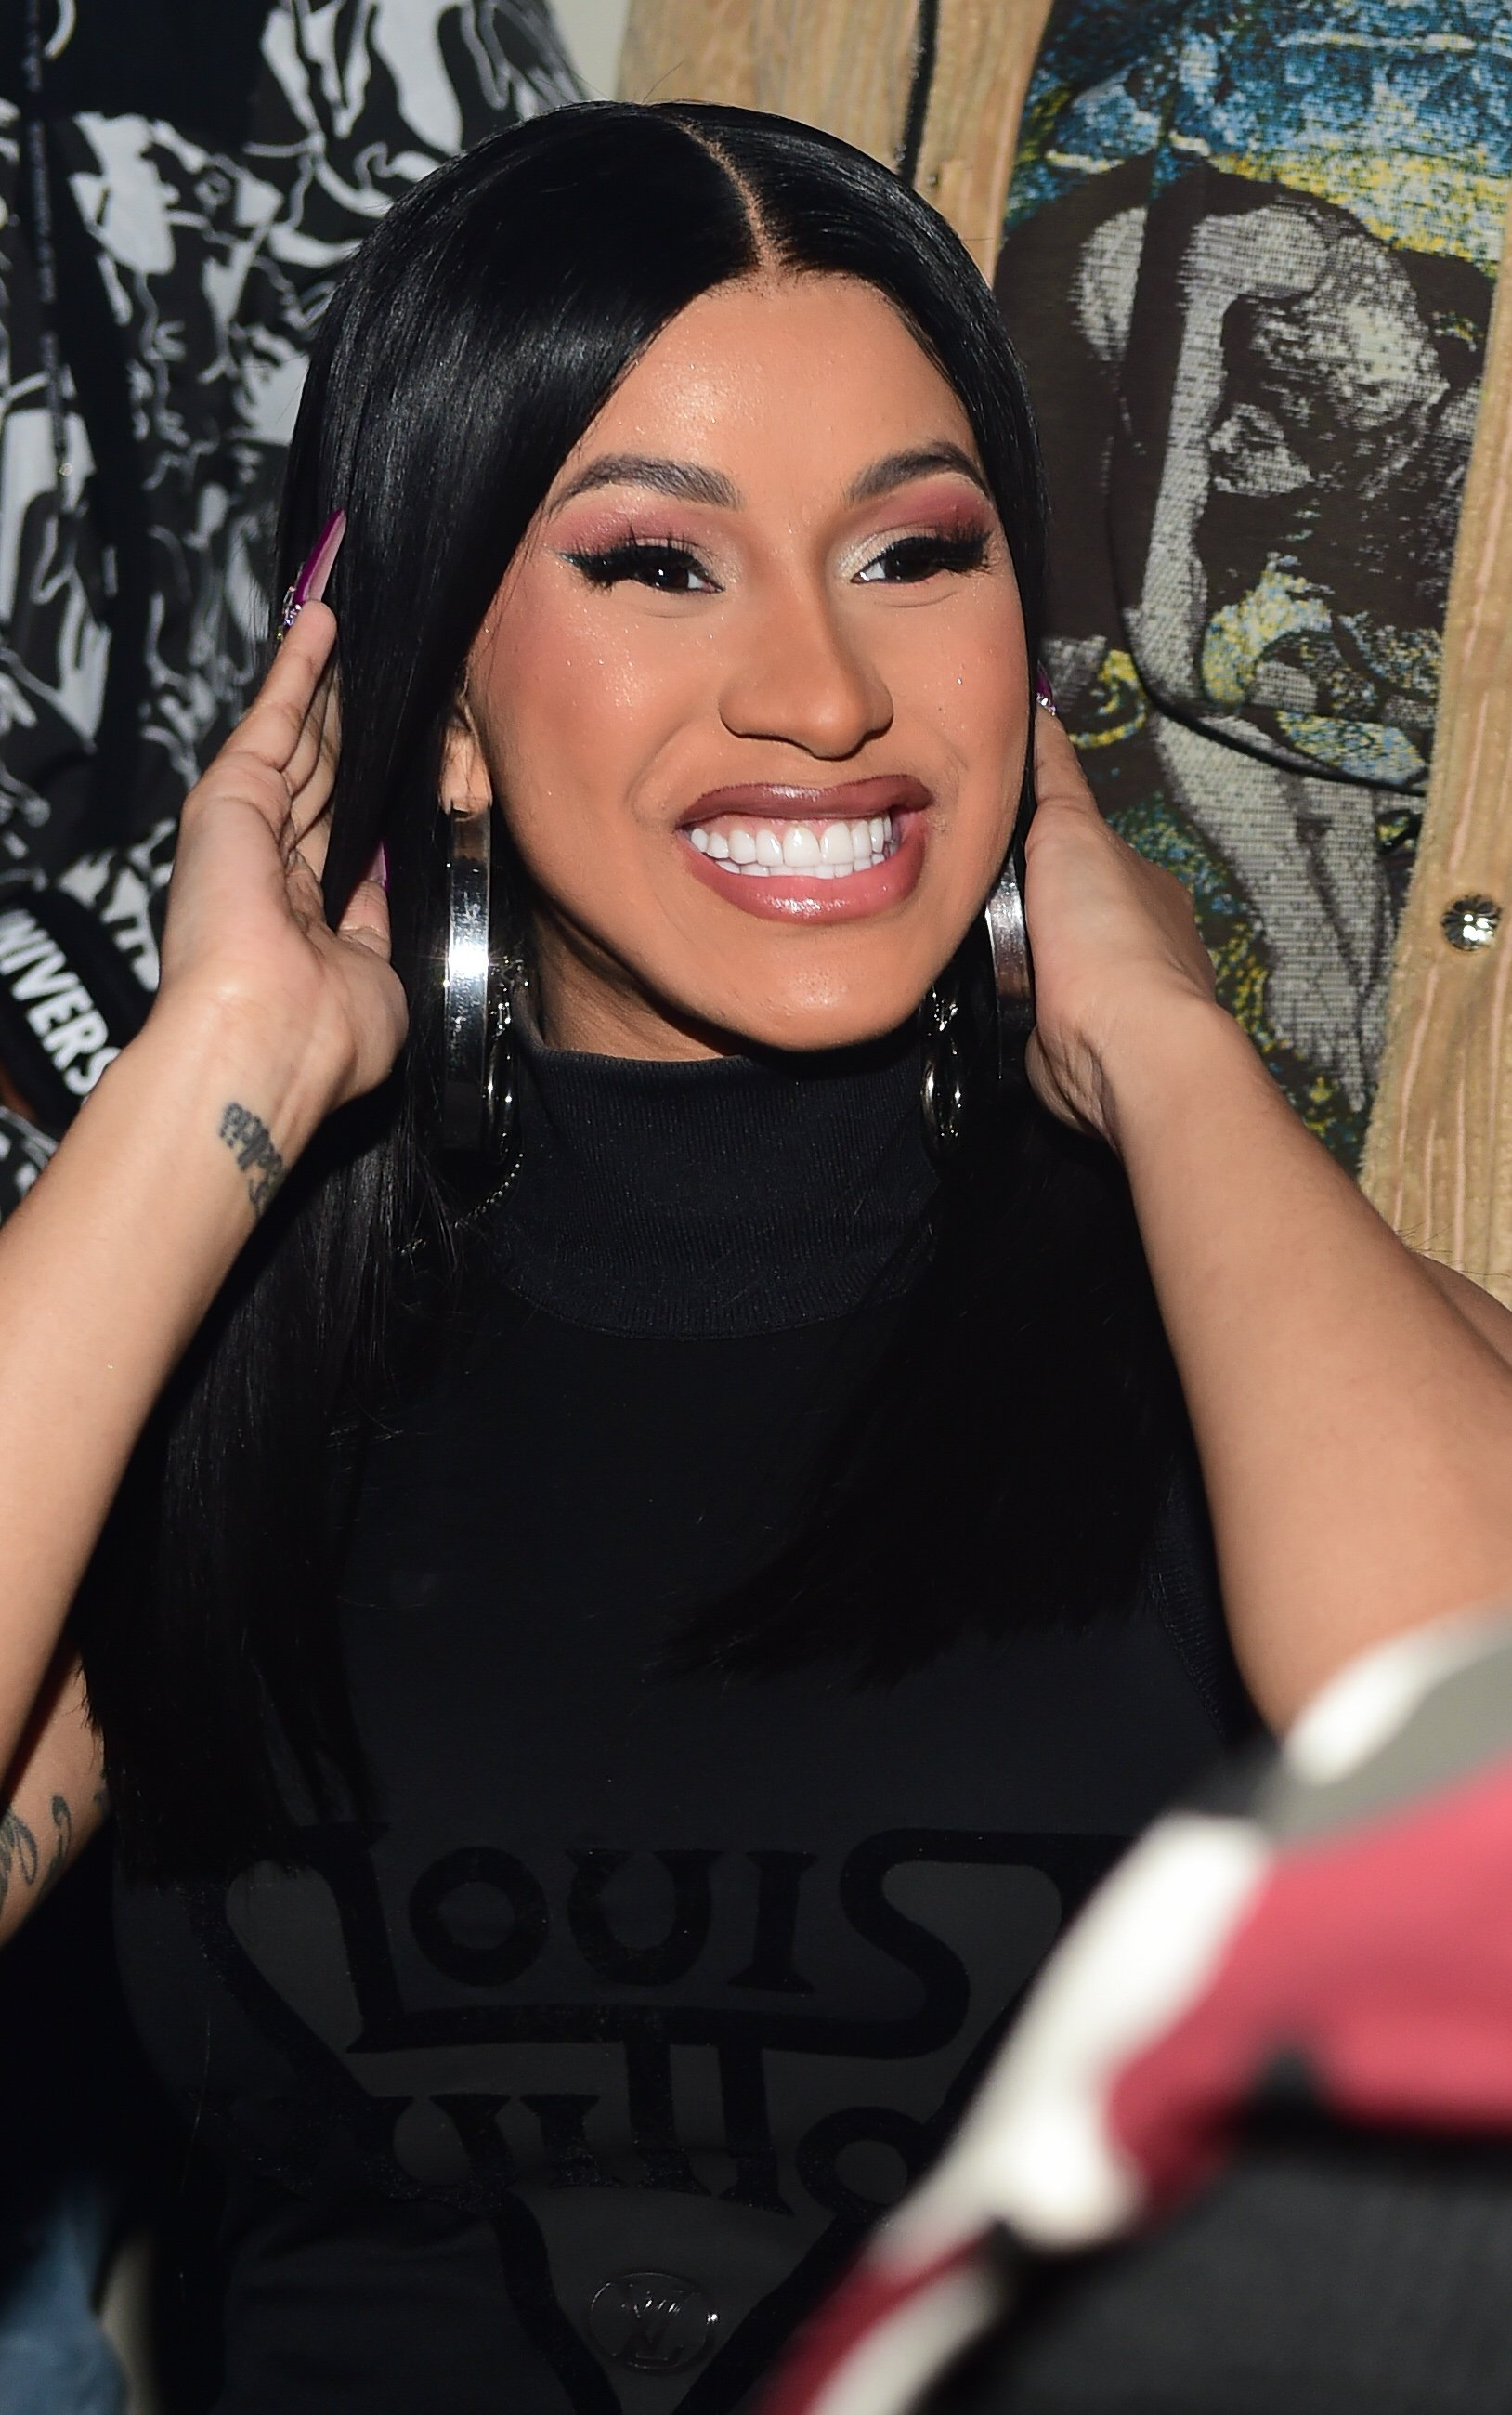 Cardi B attends the Hawks vs Nets after-party at Gold Room in Atlanta, Georgia on February 28, 2020 | Photo: Getty Images